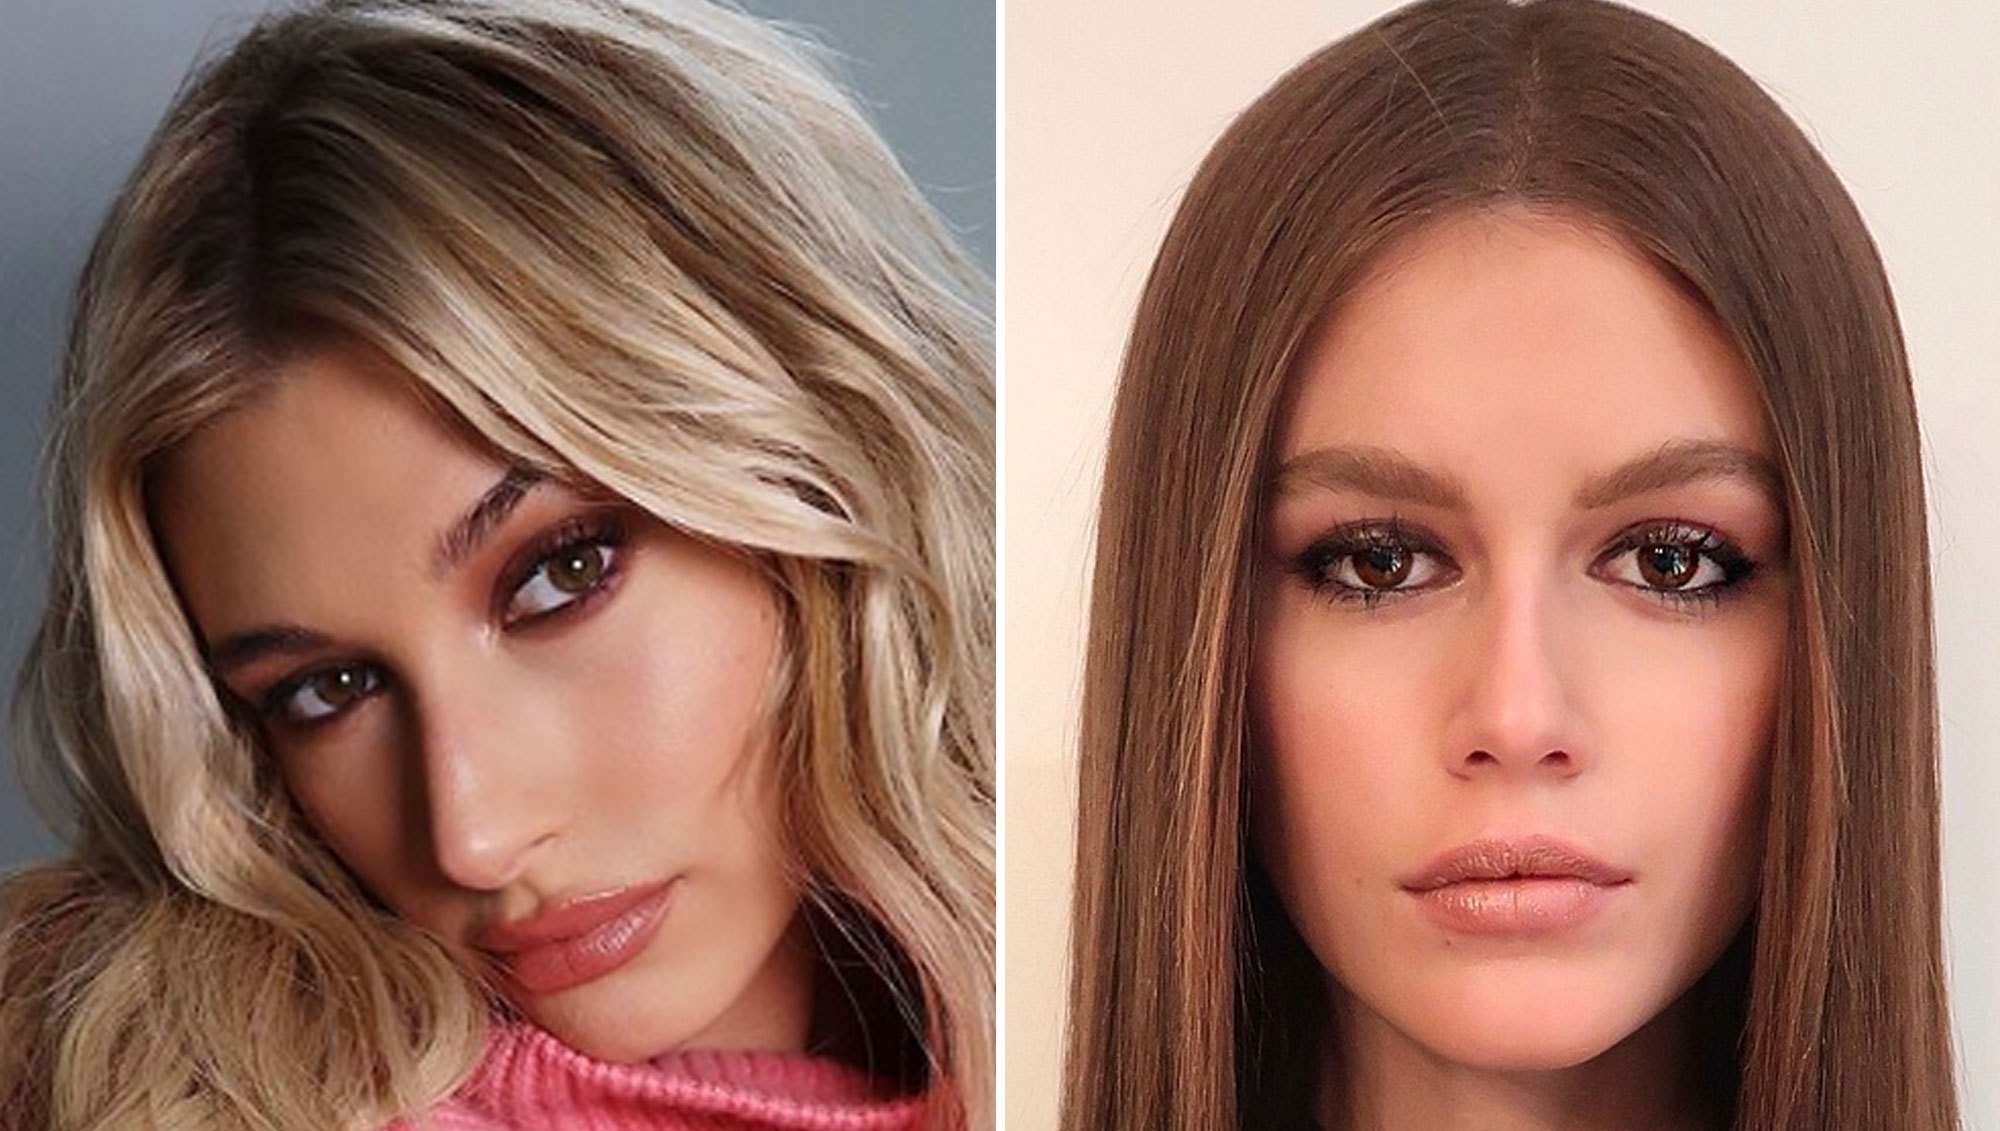 What Hailey Baldwin¹s Waves and Kaia Gerber¹s Glass Hair Has in Common